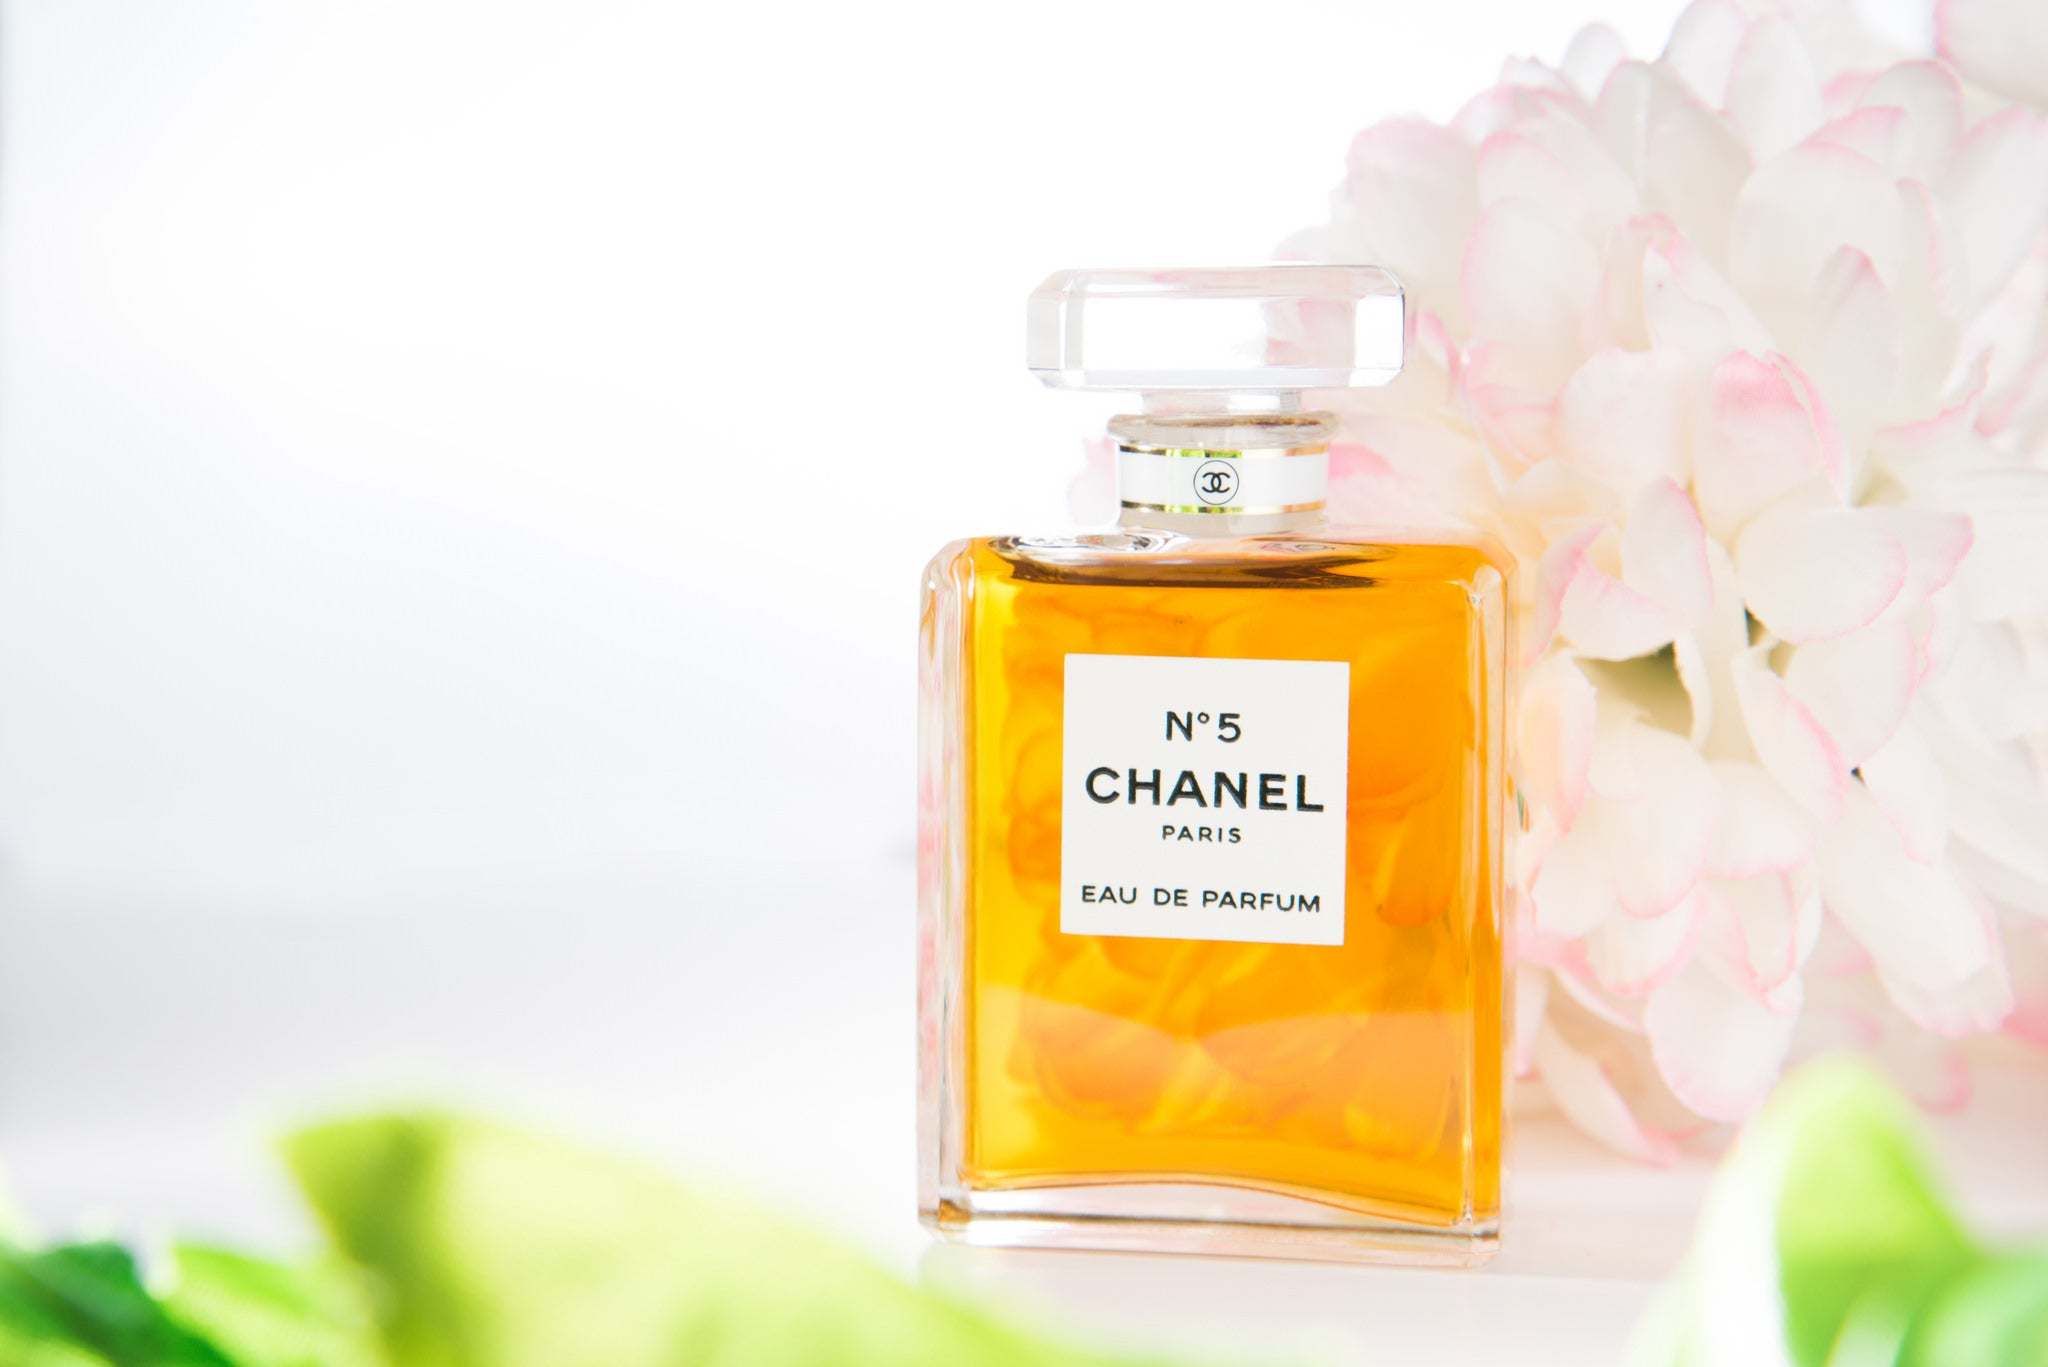 Jasmine absolute is one ingredient in Chanel no5